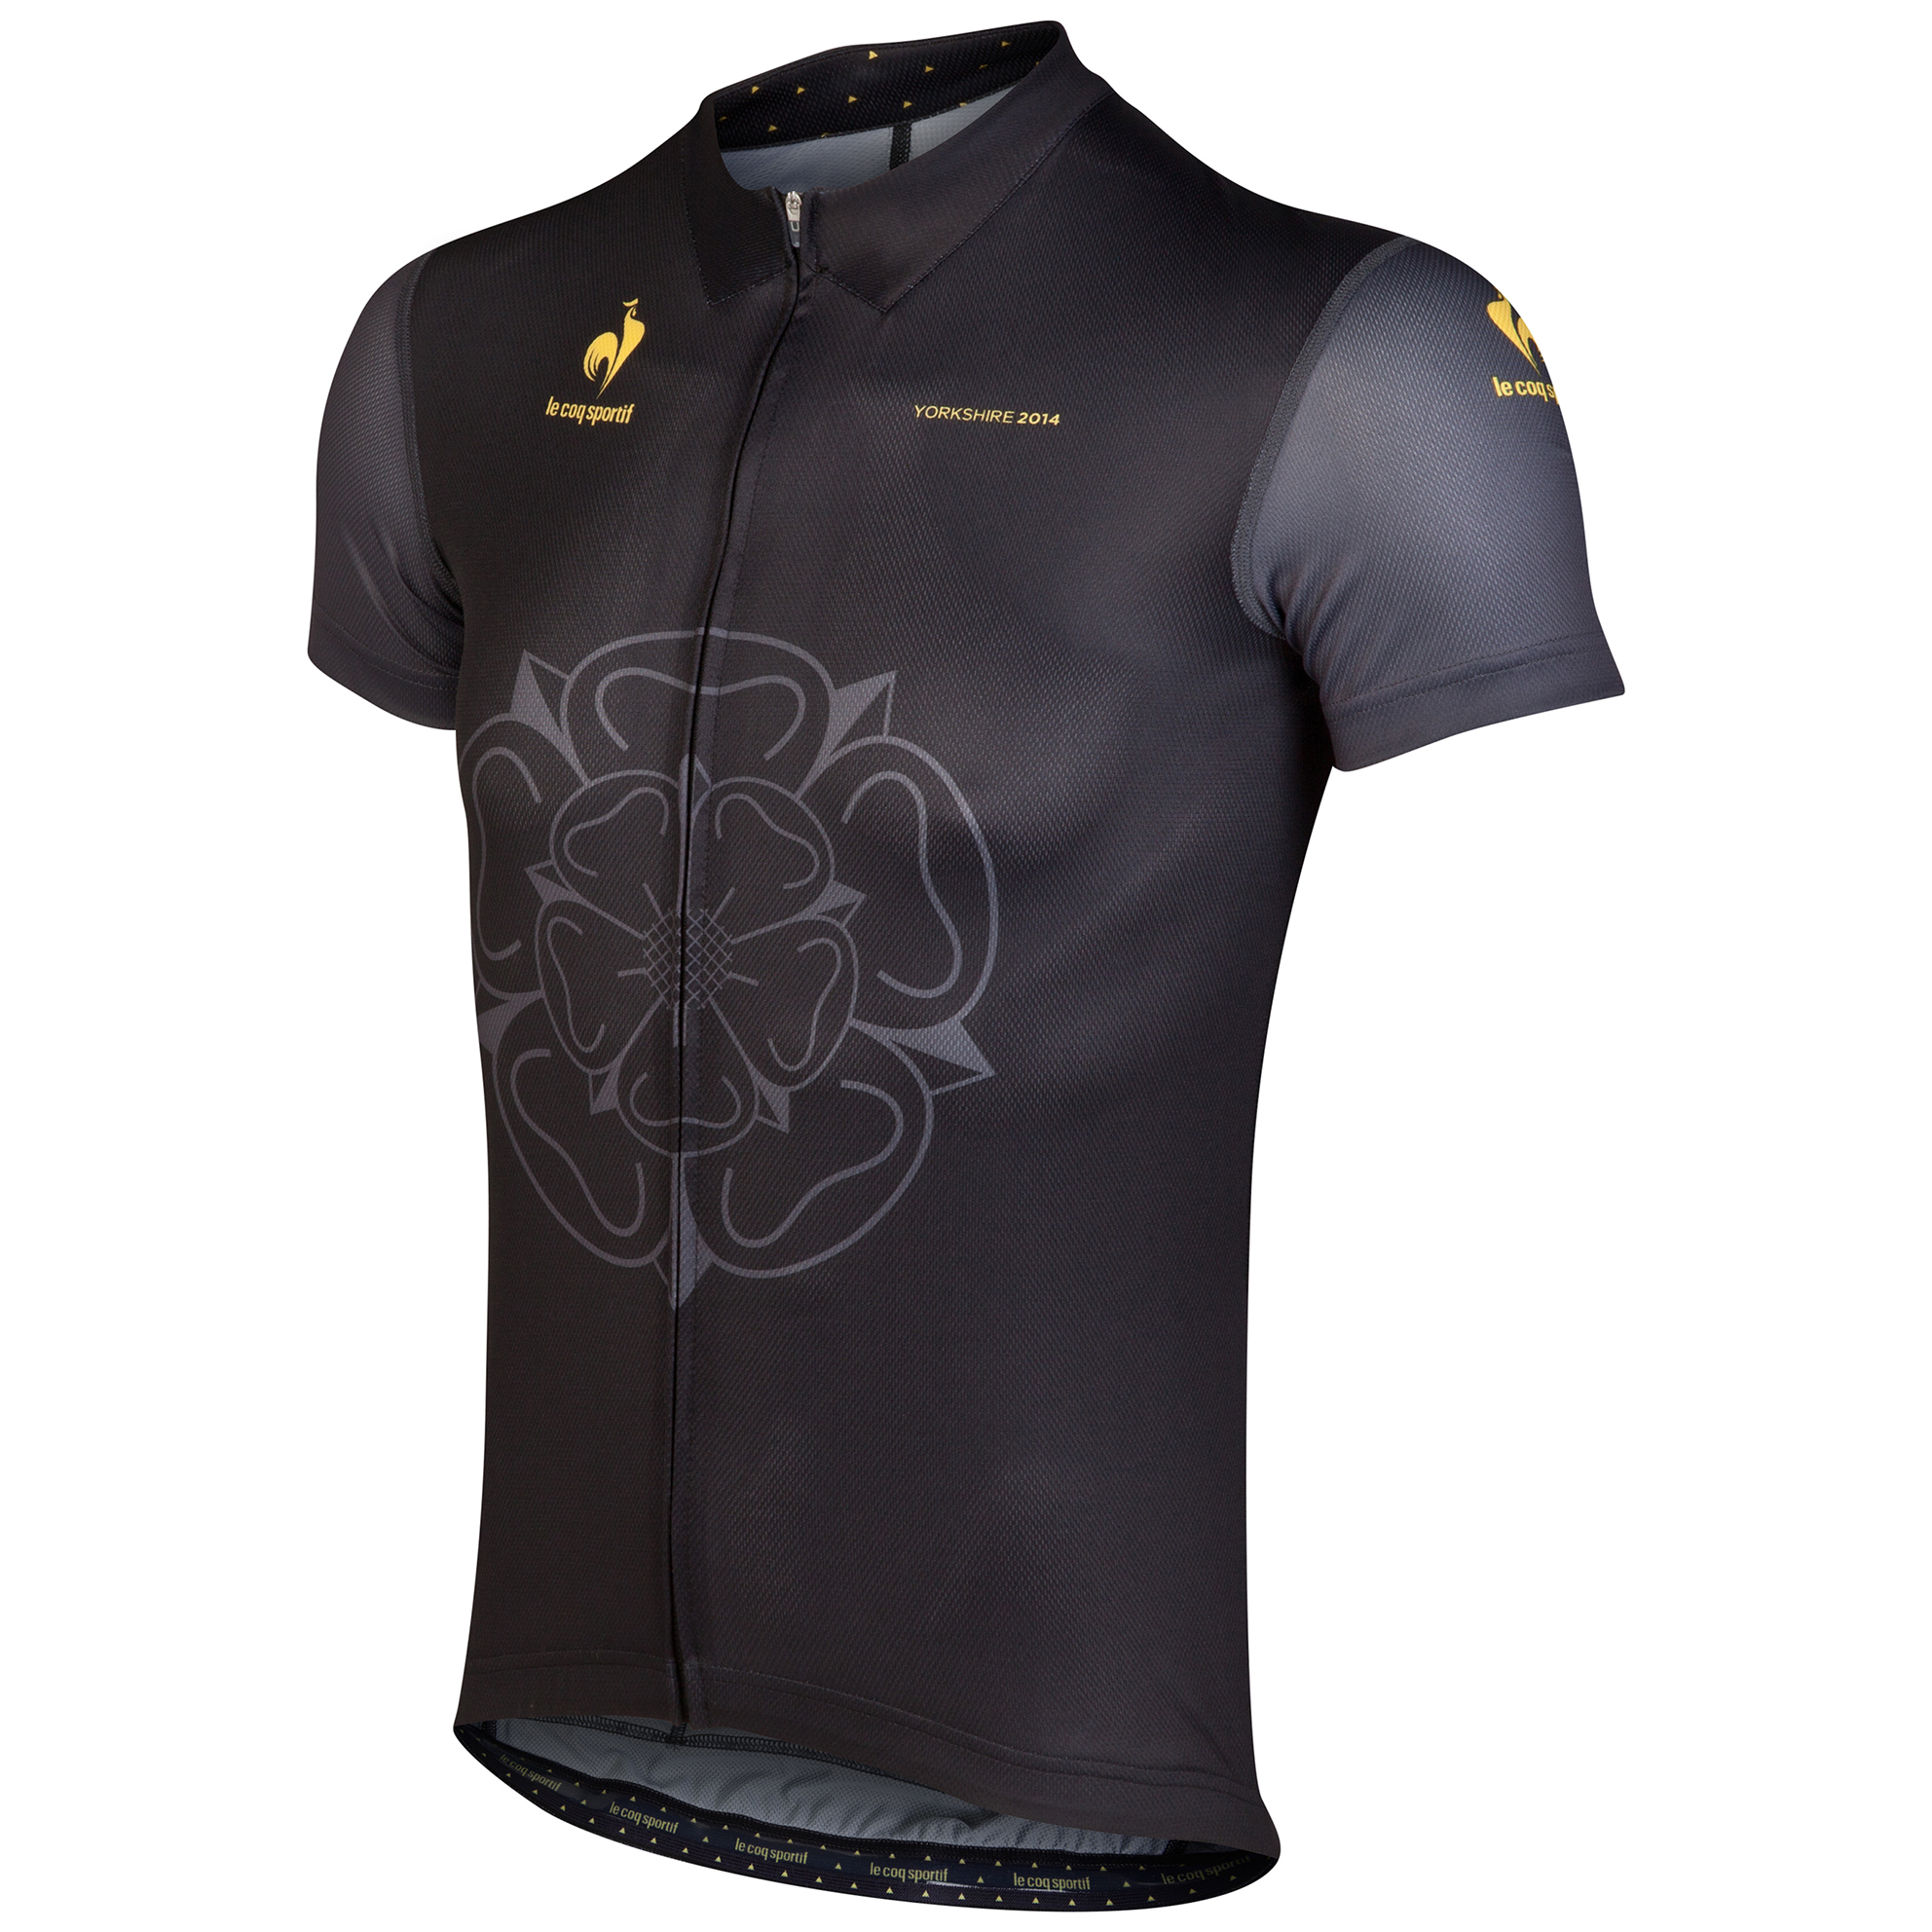 Le Tour de France Le Coq Sportif Yorkshire Dedicated Jersey - Black